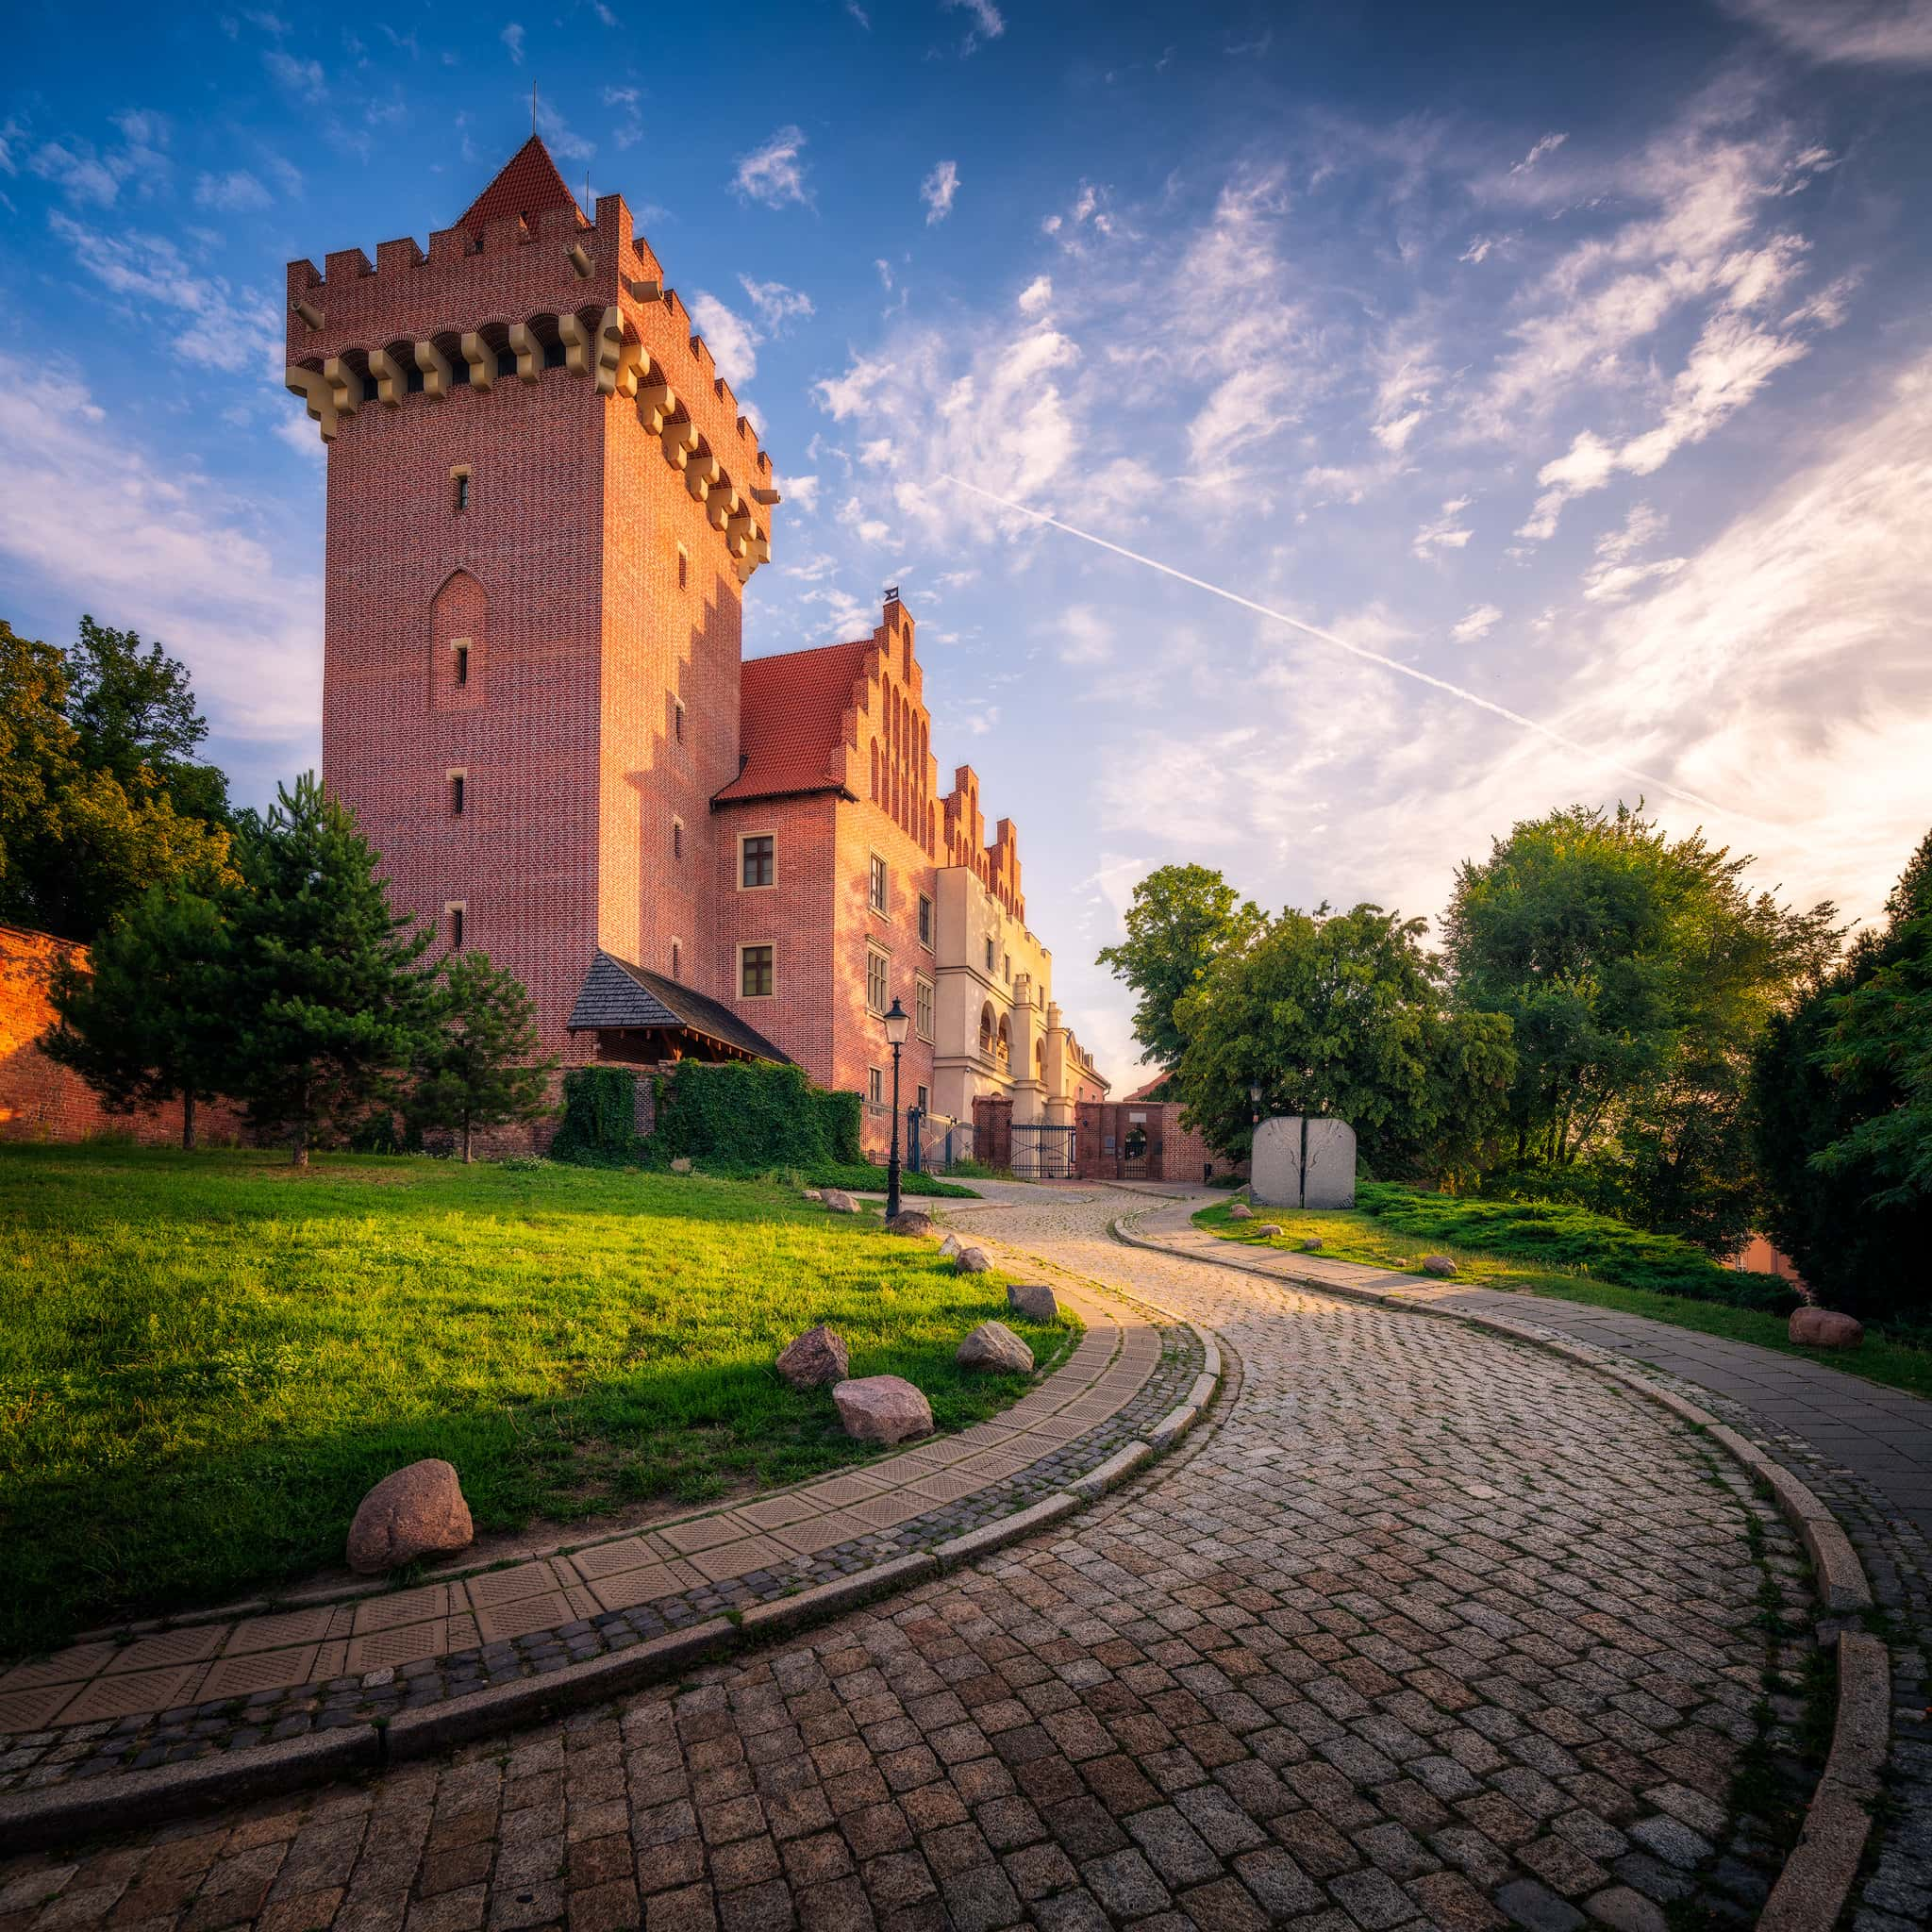 The Royal Castle - a day in Poznan; Poland